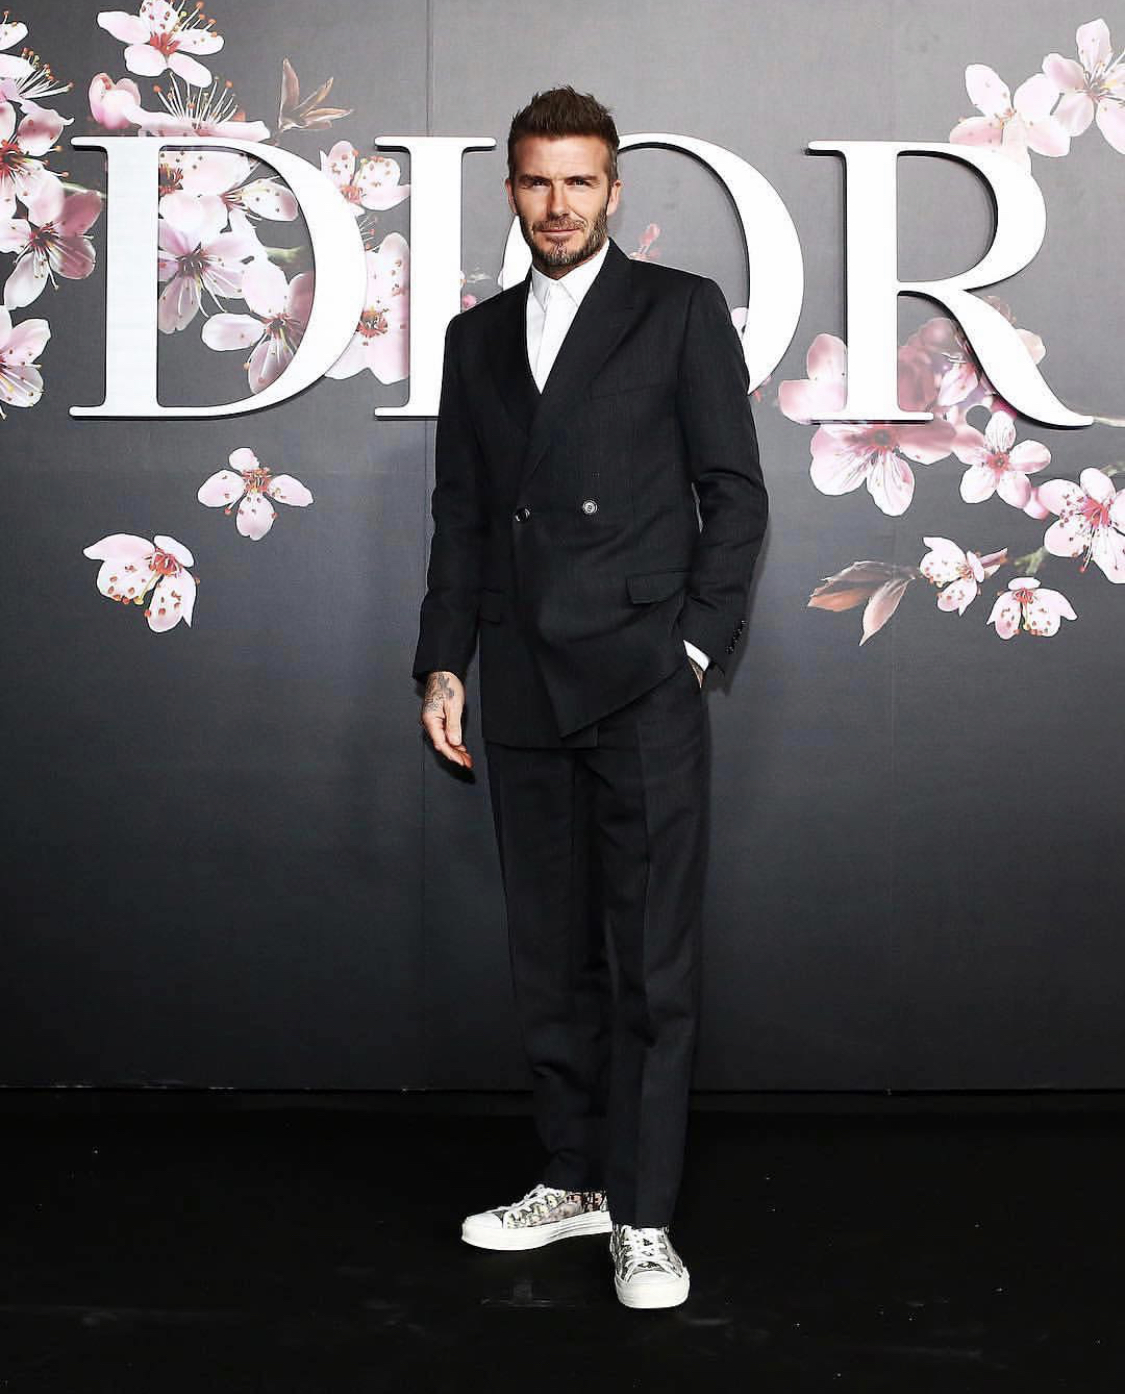 SPOTTED: David Beckham At Dior Pre-Fall 2019 Show in Tokyo